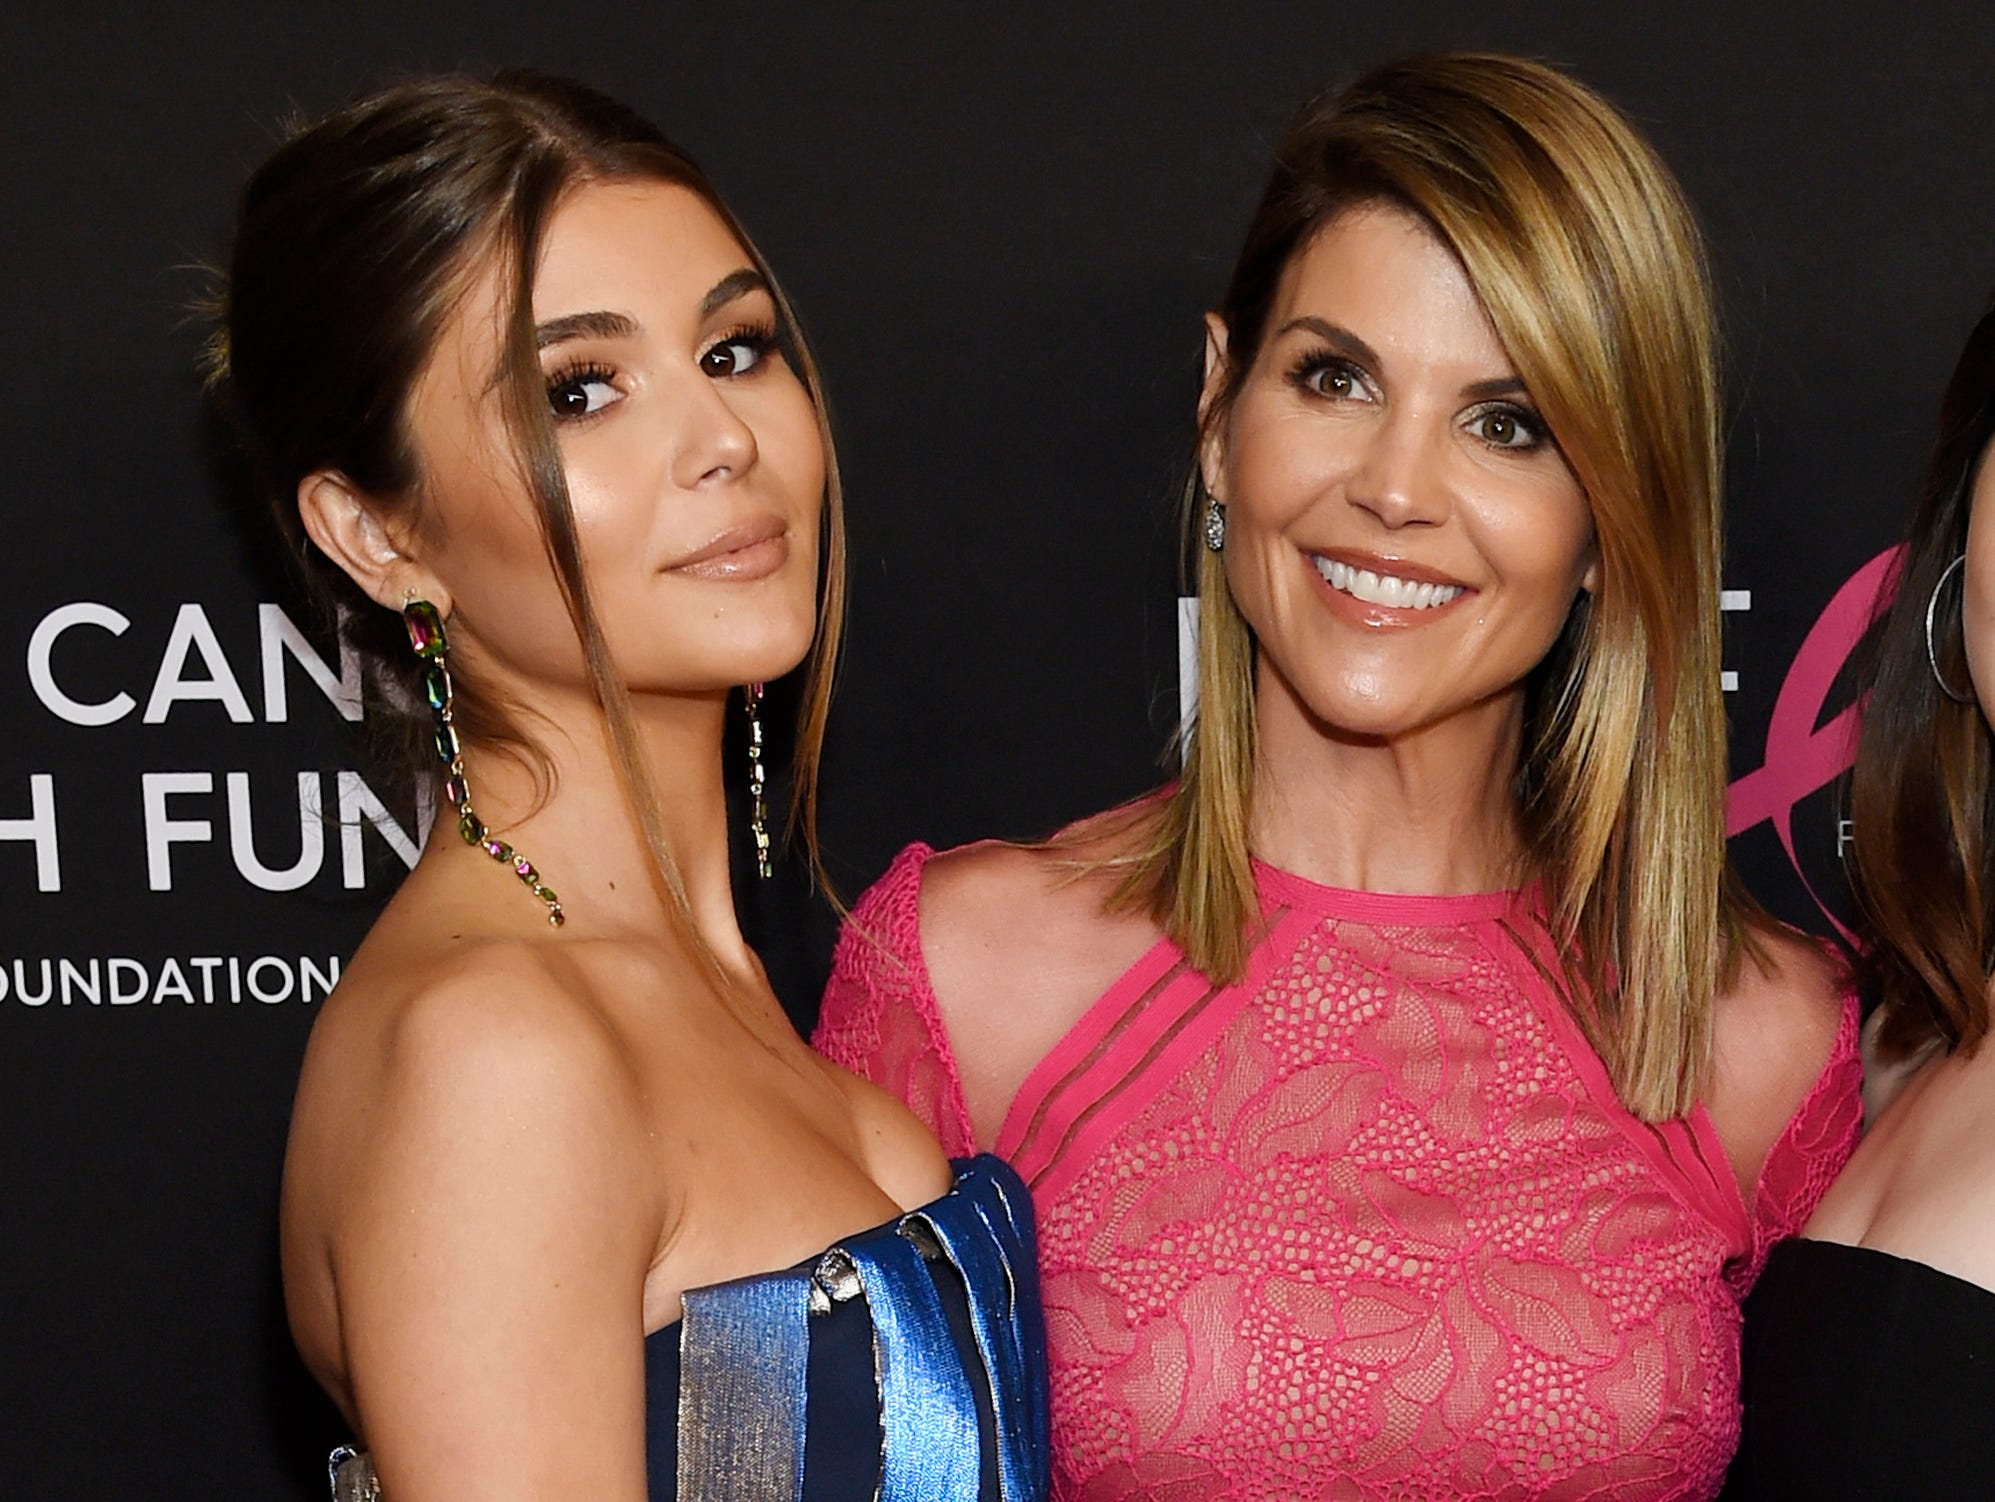 Lori Loughlin's daughterOliviais being trolled over bribery case: 'Expel this cheater'